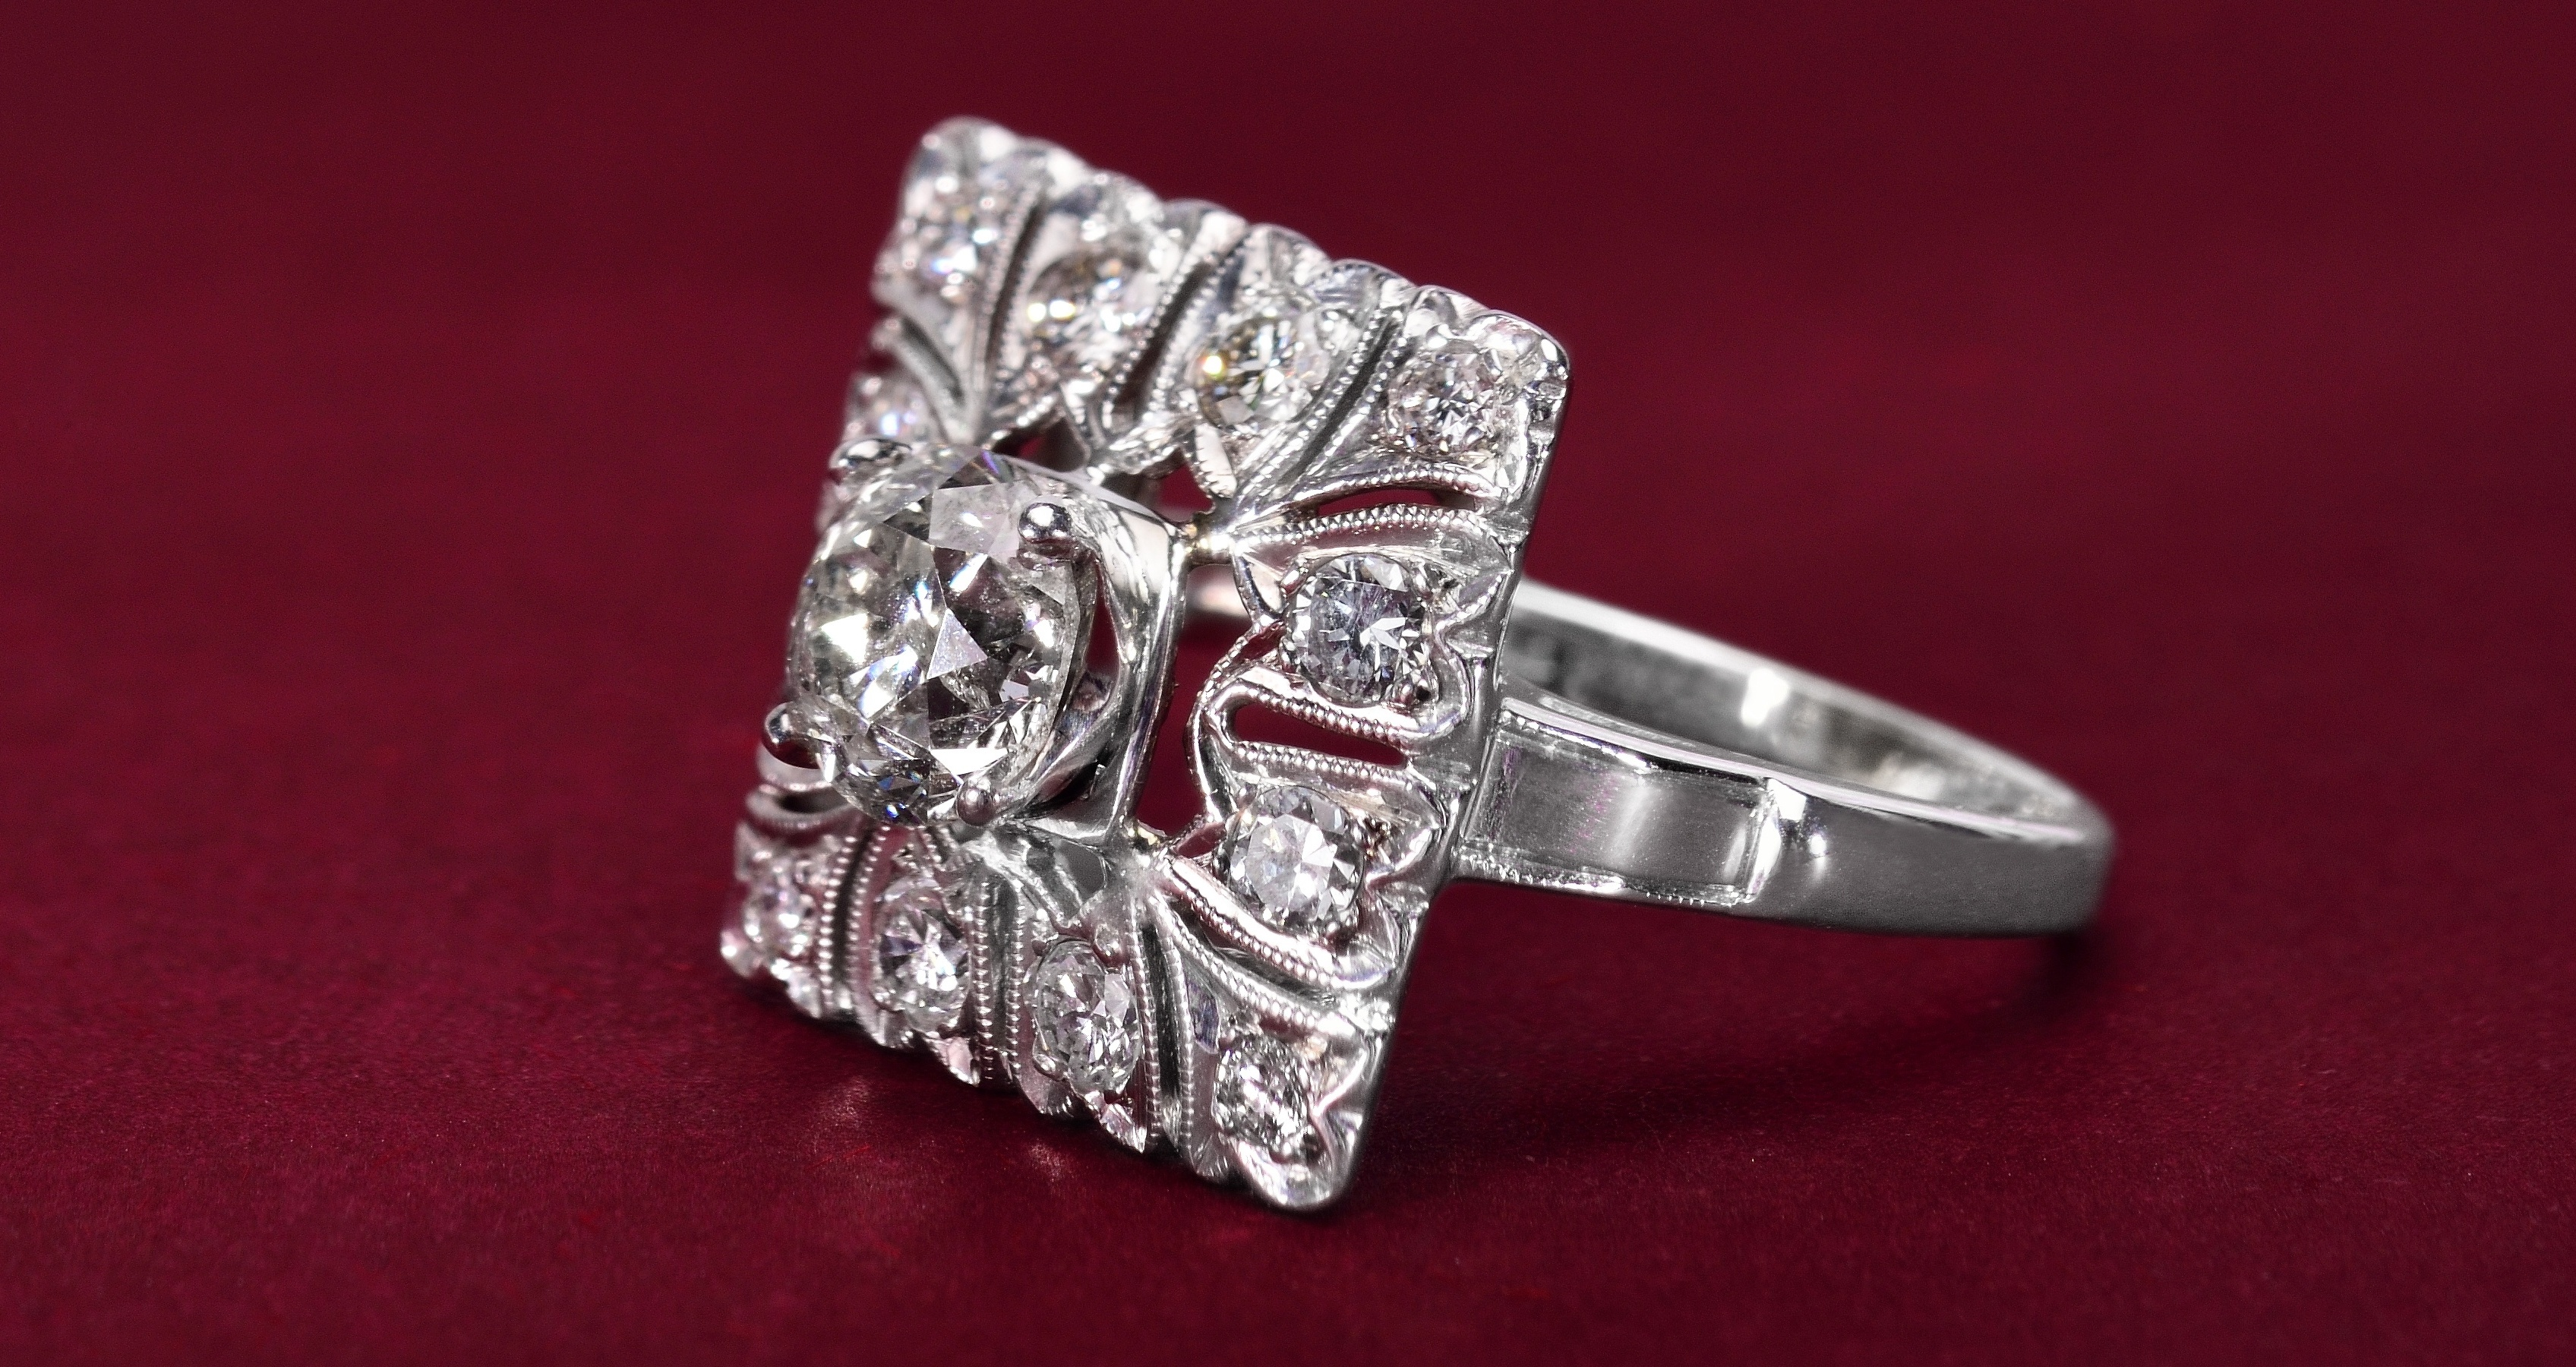 5 Times To Consider Custom Designing An Engagement Ring